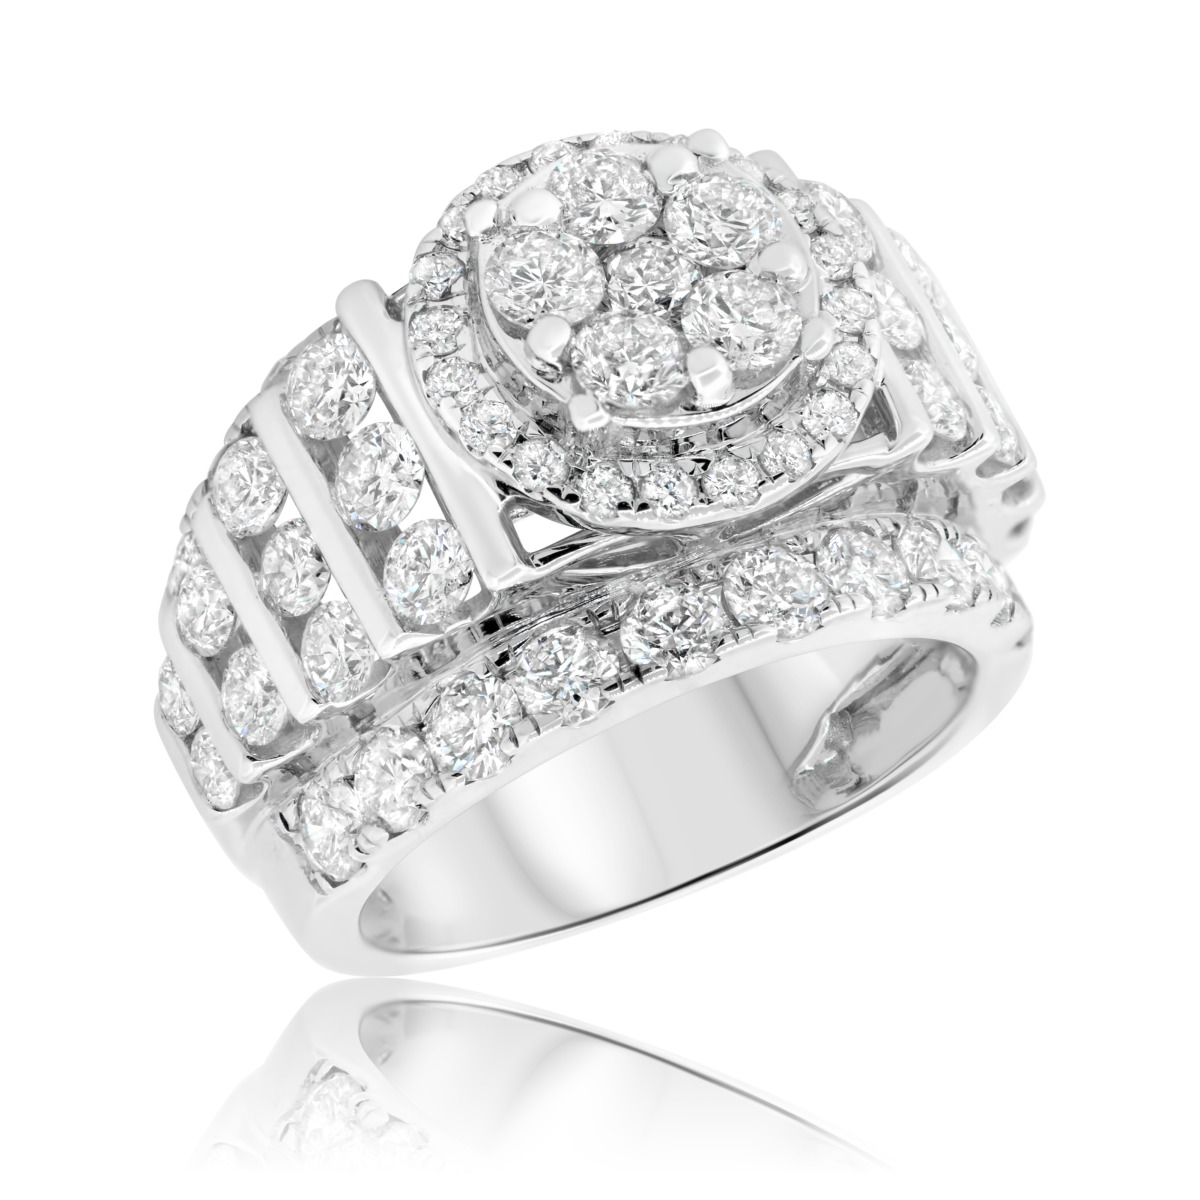 4 CT. T.W. Diamond Engagement Ring 10K White Gold